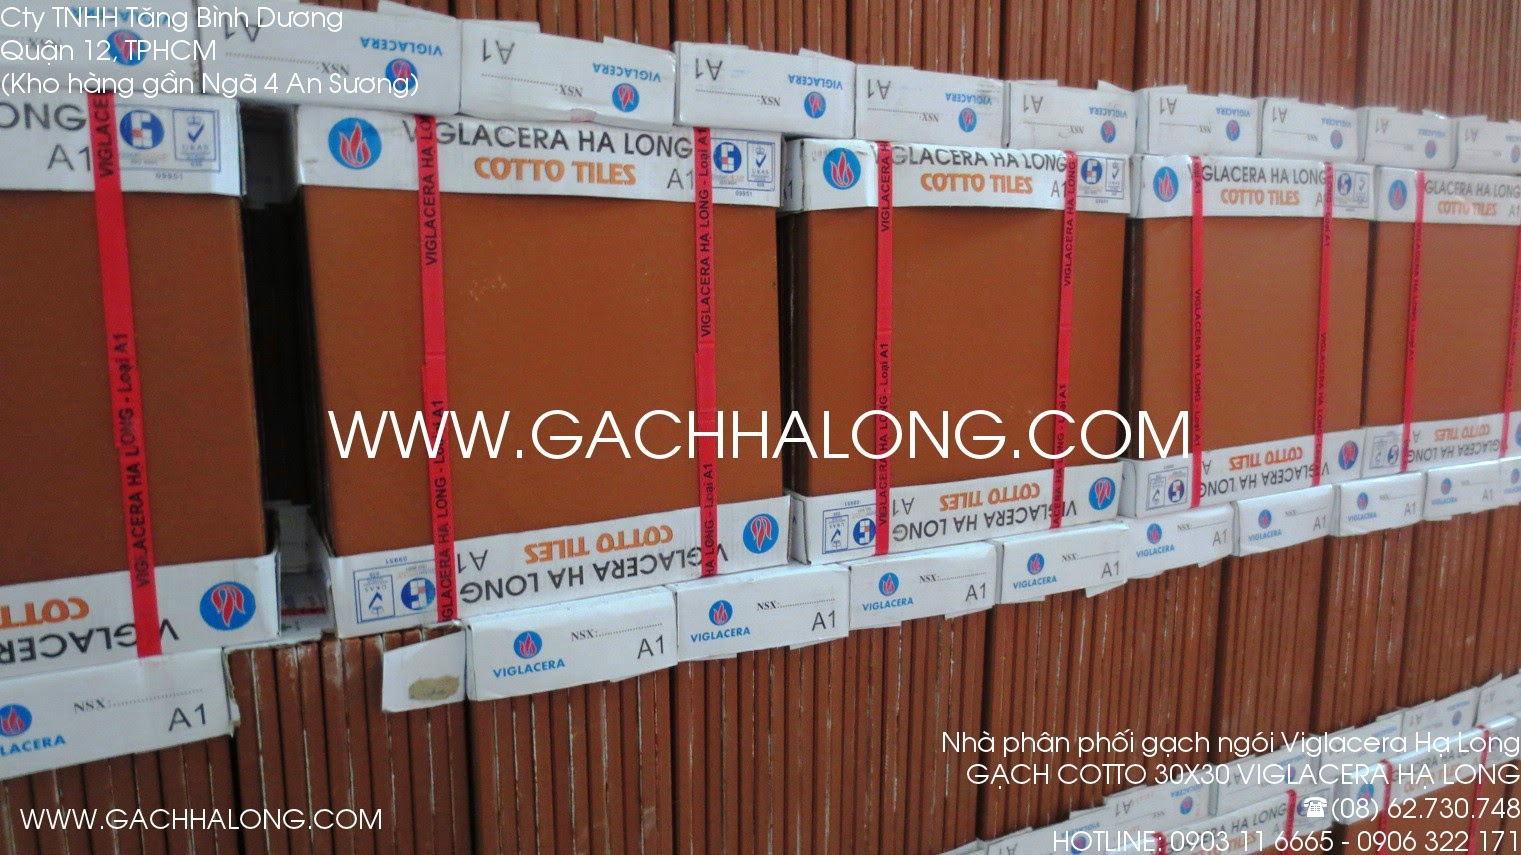 gach cotto 30x30 ha long